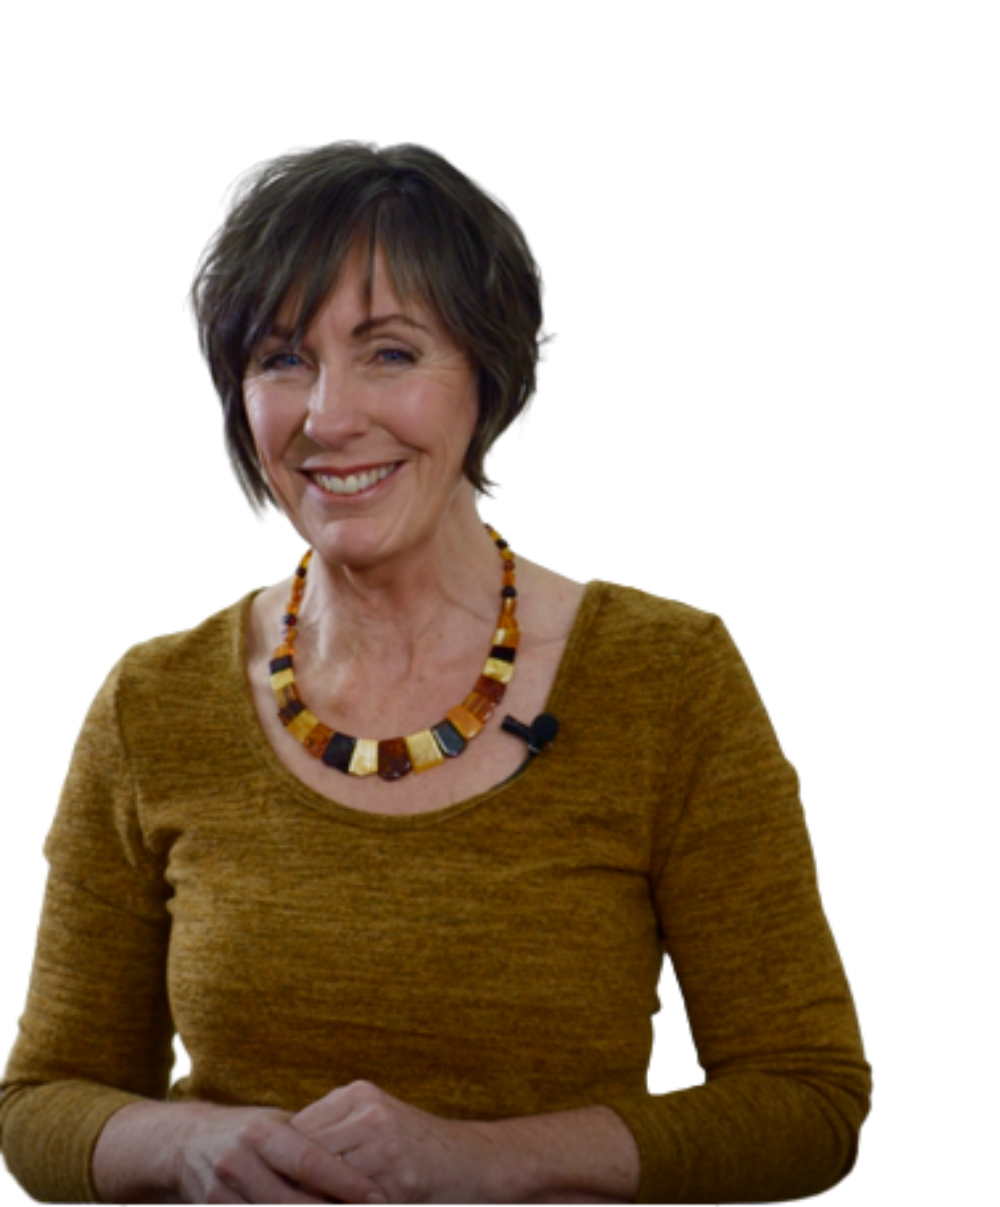 Online Learning with Judy Celmins from ThriveableBiz